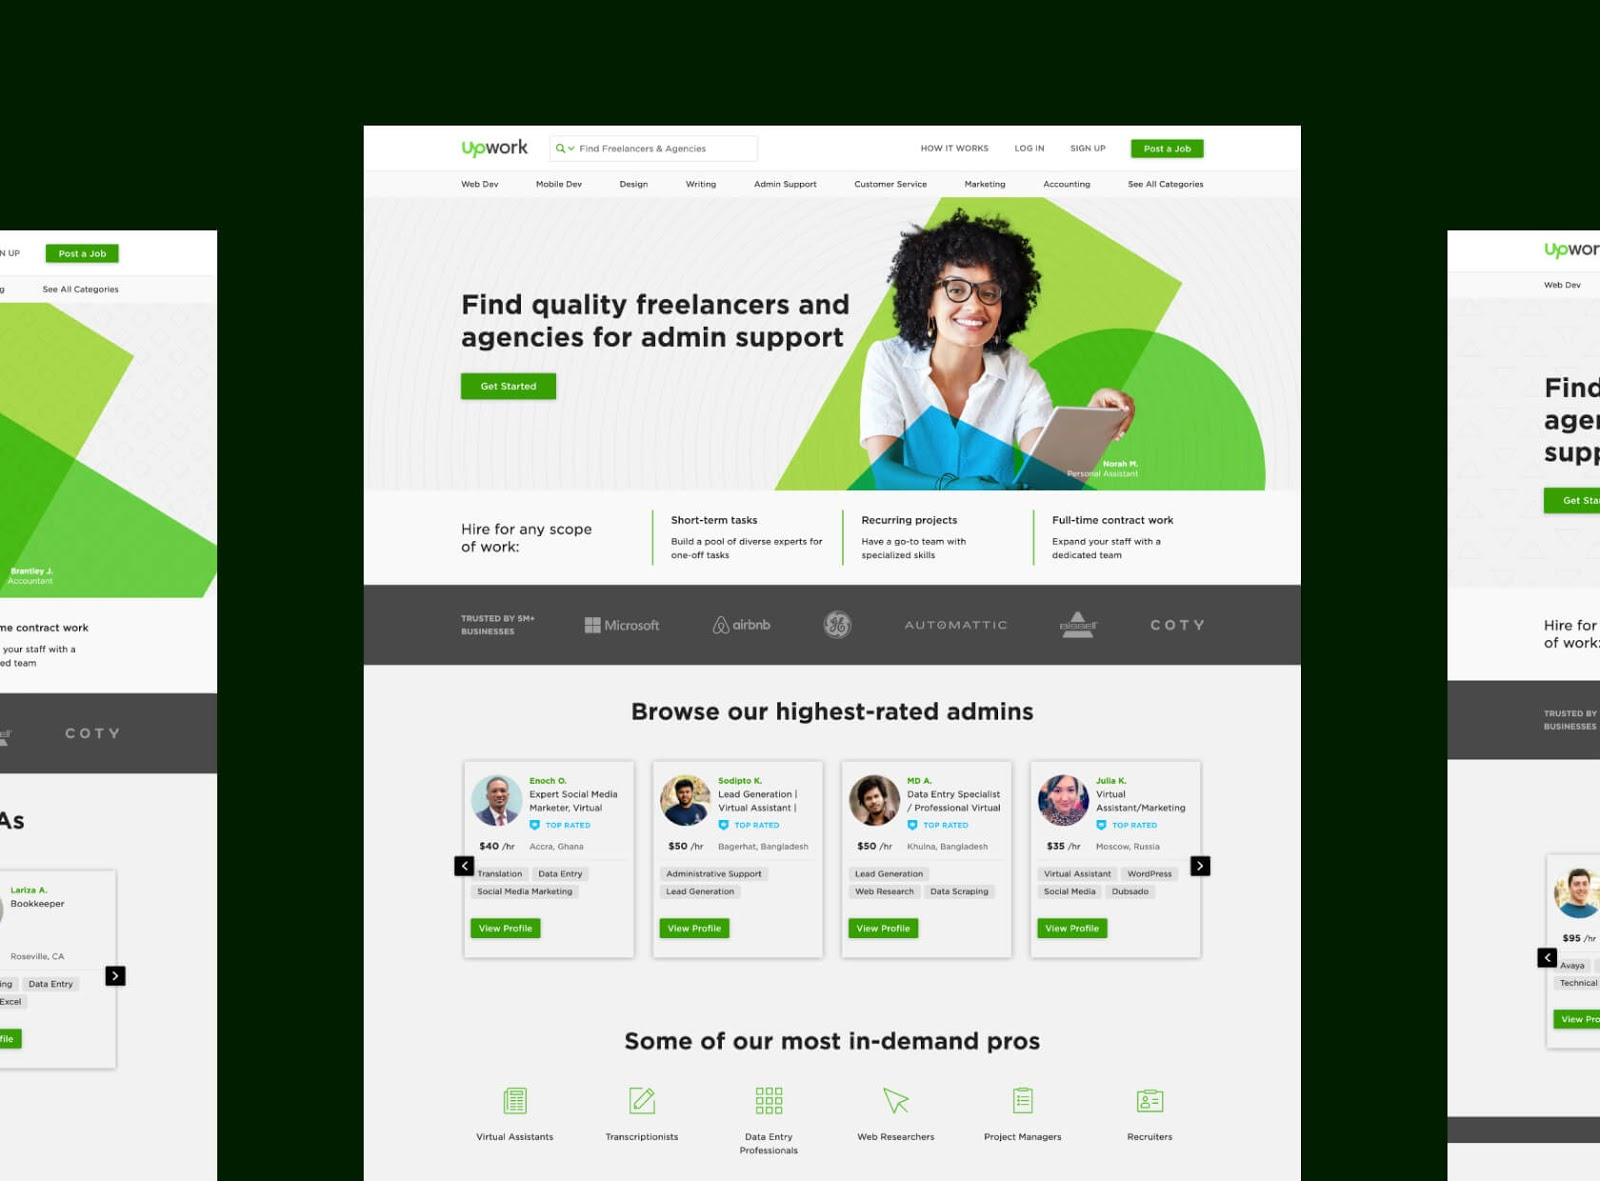 An image of the Upwork website.